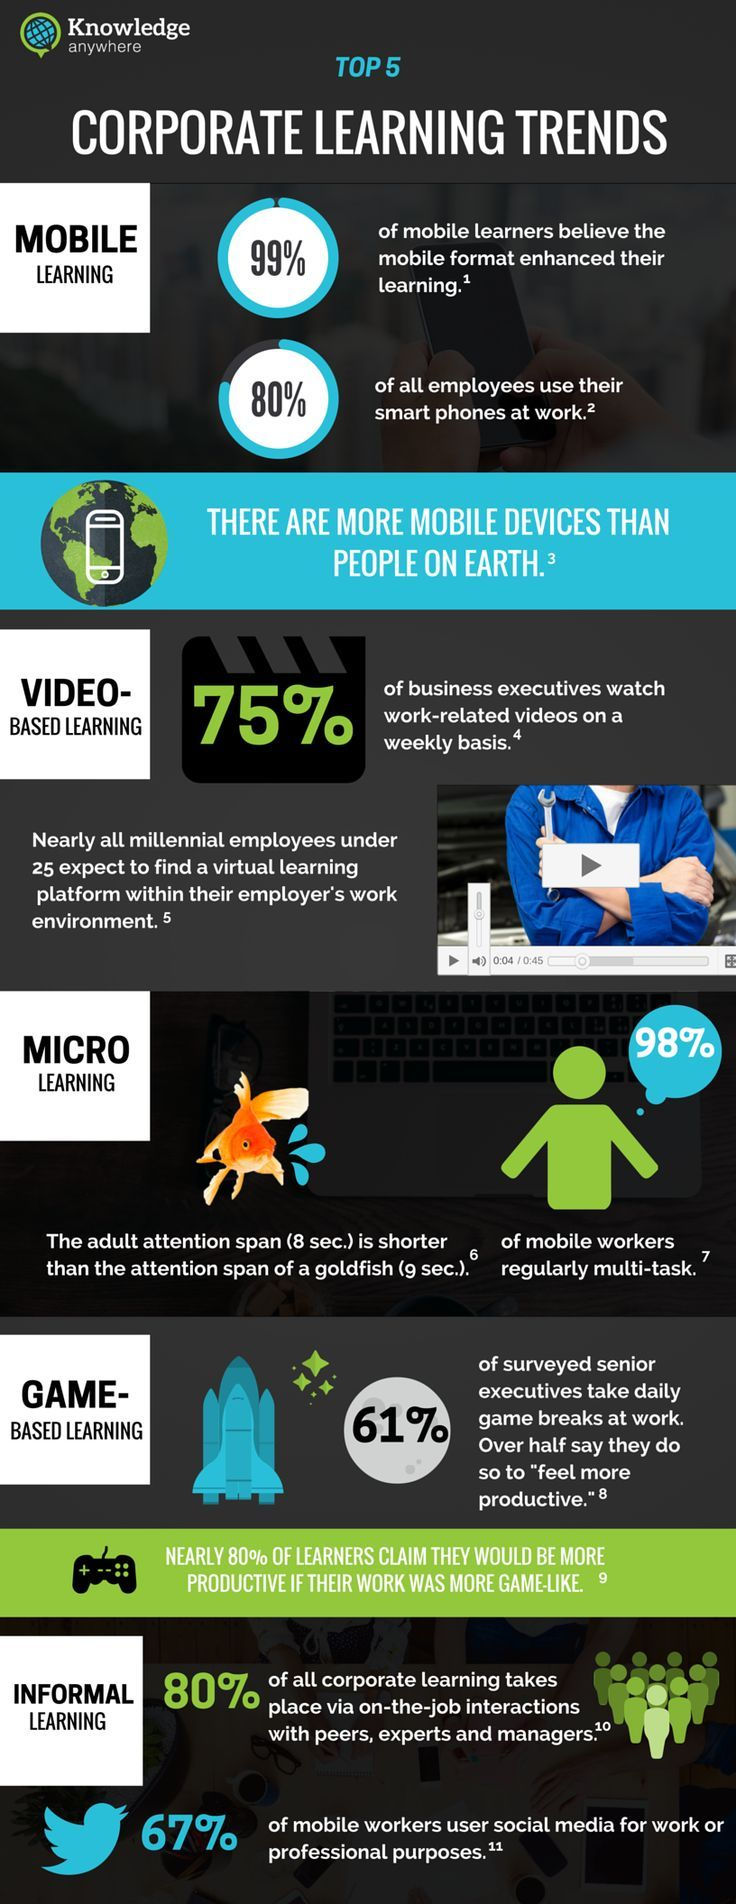 Top 5 Corporate Learning Trends for 2016